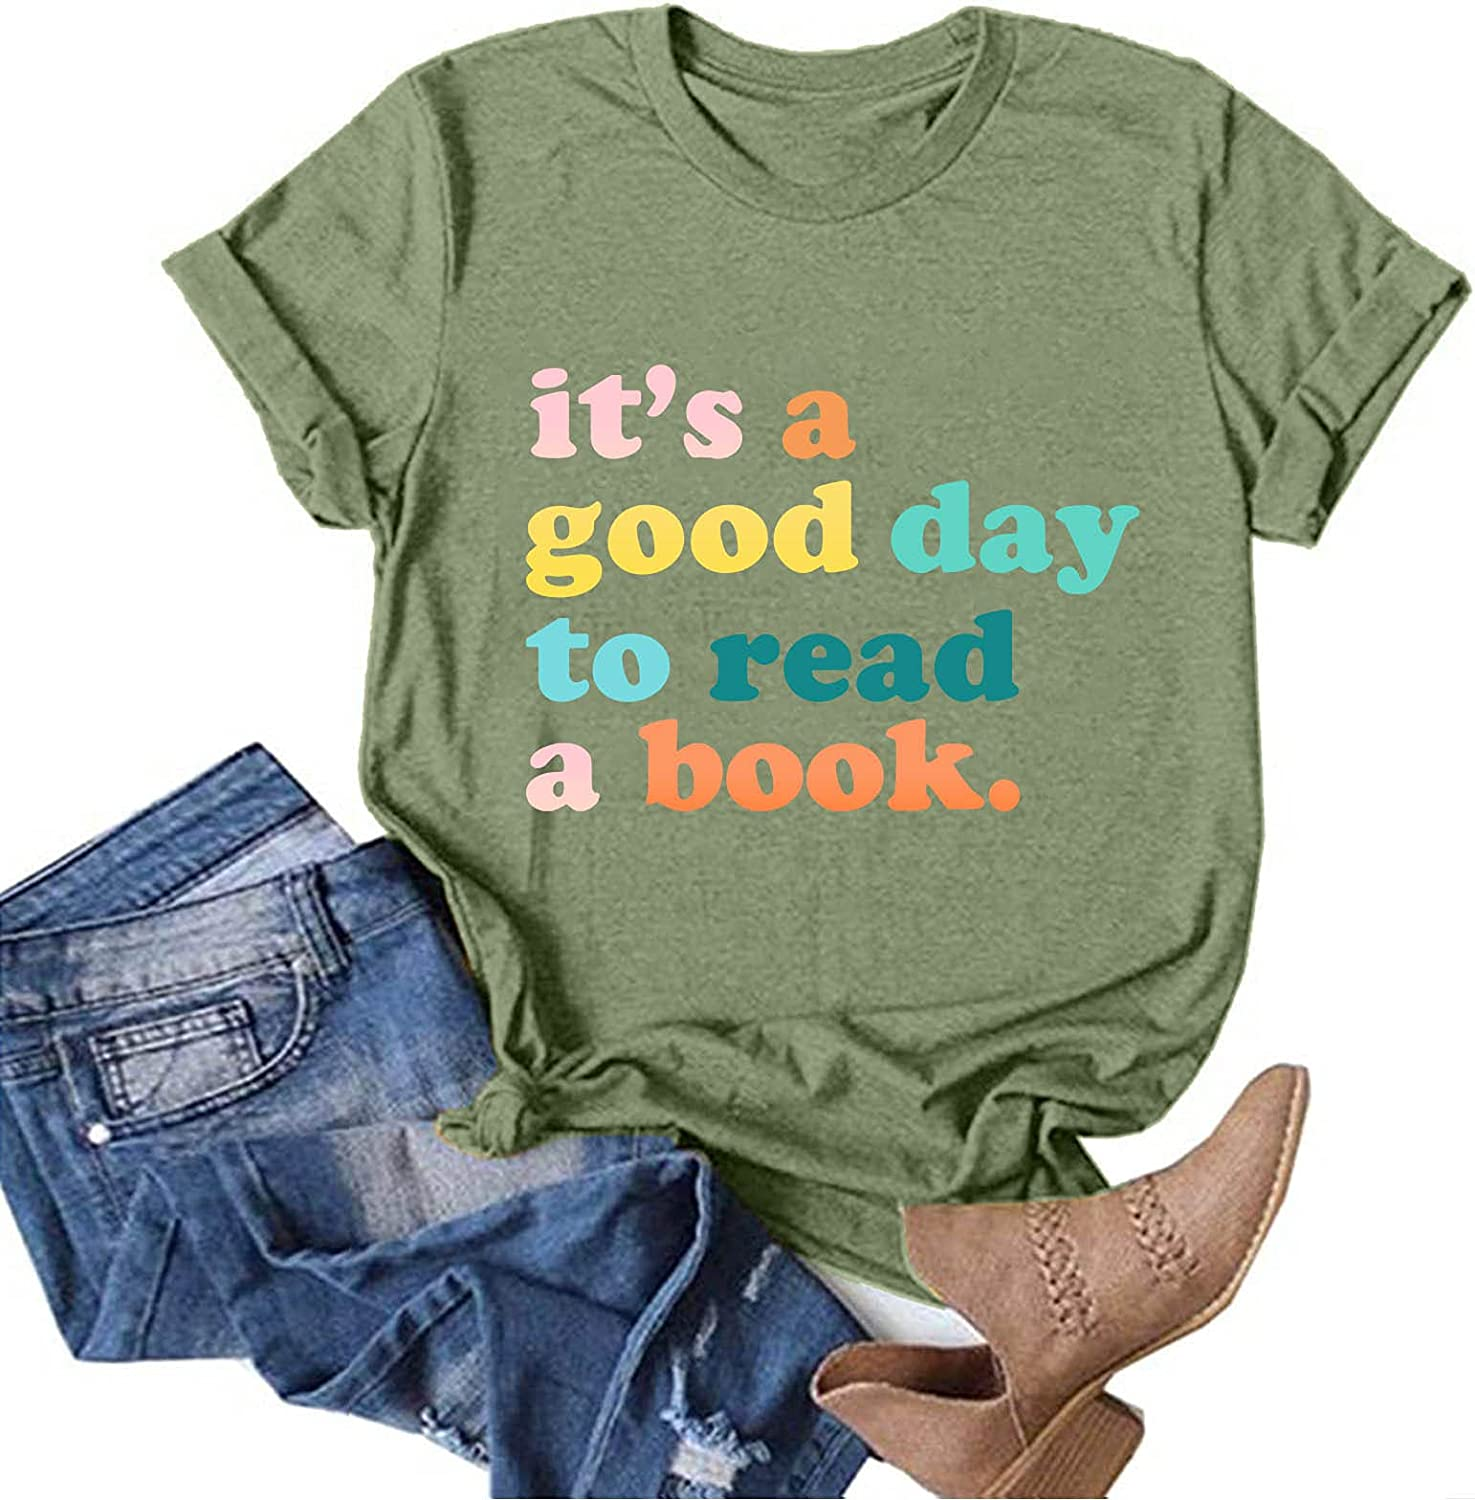 Graphic Tshirts for Women Fun Happy Graphic Tees Summer Cute Letter Printed T-Shirts Loose Fit Tee Shirts Blouses